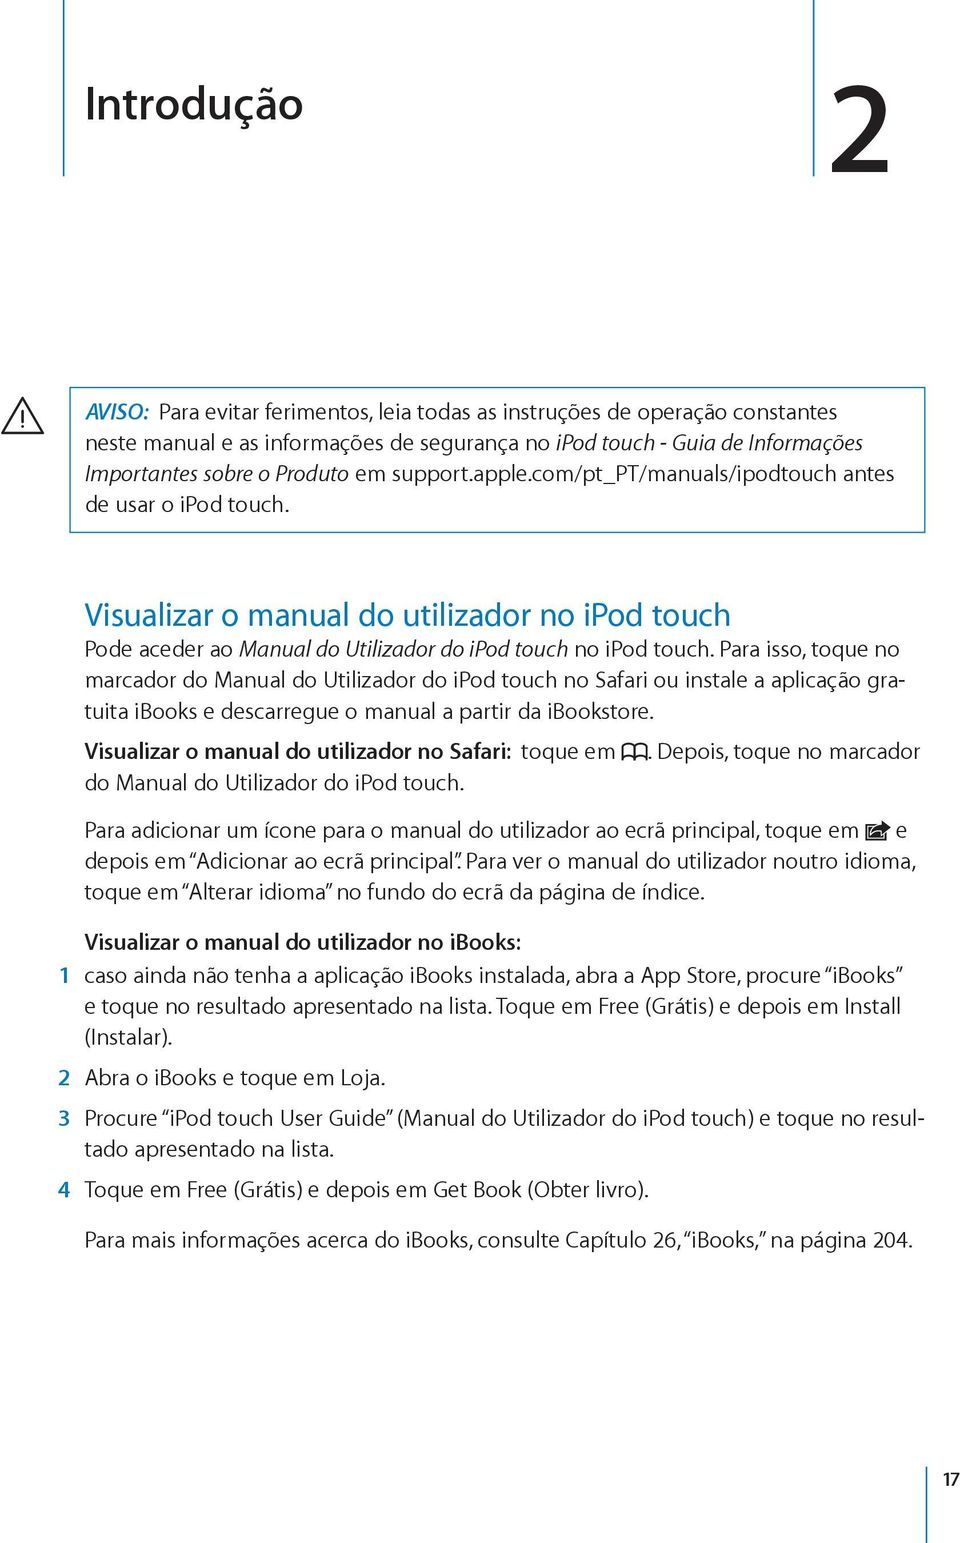 Para isso, toque no marcador do Manual do Utilizador do ipod touch no Safari ou instale a aplicação gratuita ibooks e descarregue o manual a partir da ibookstore.